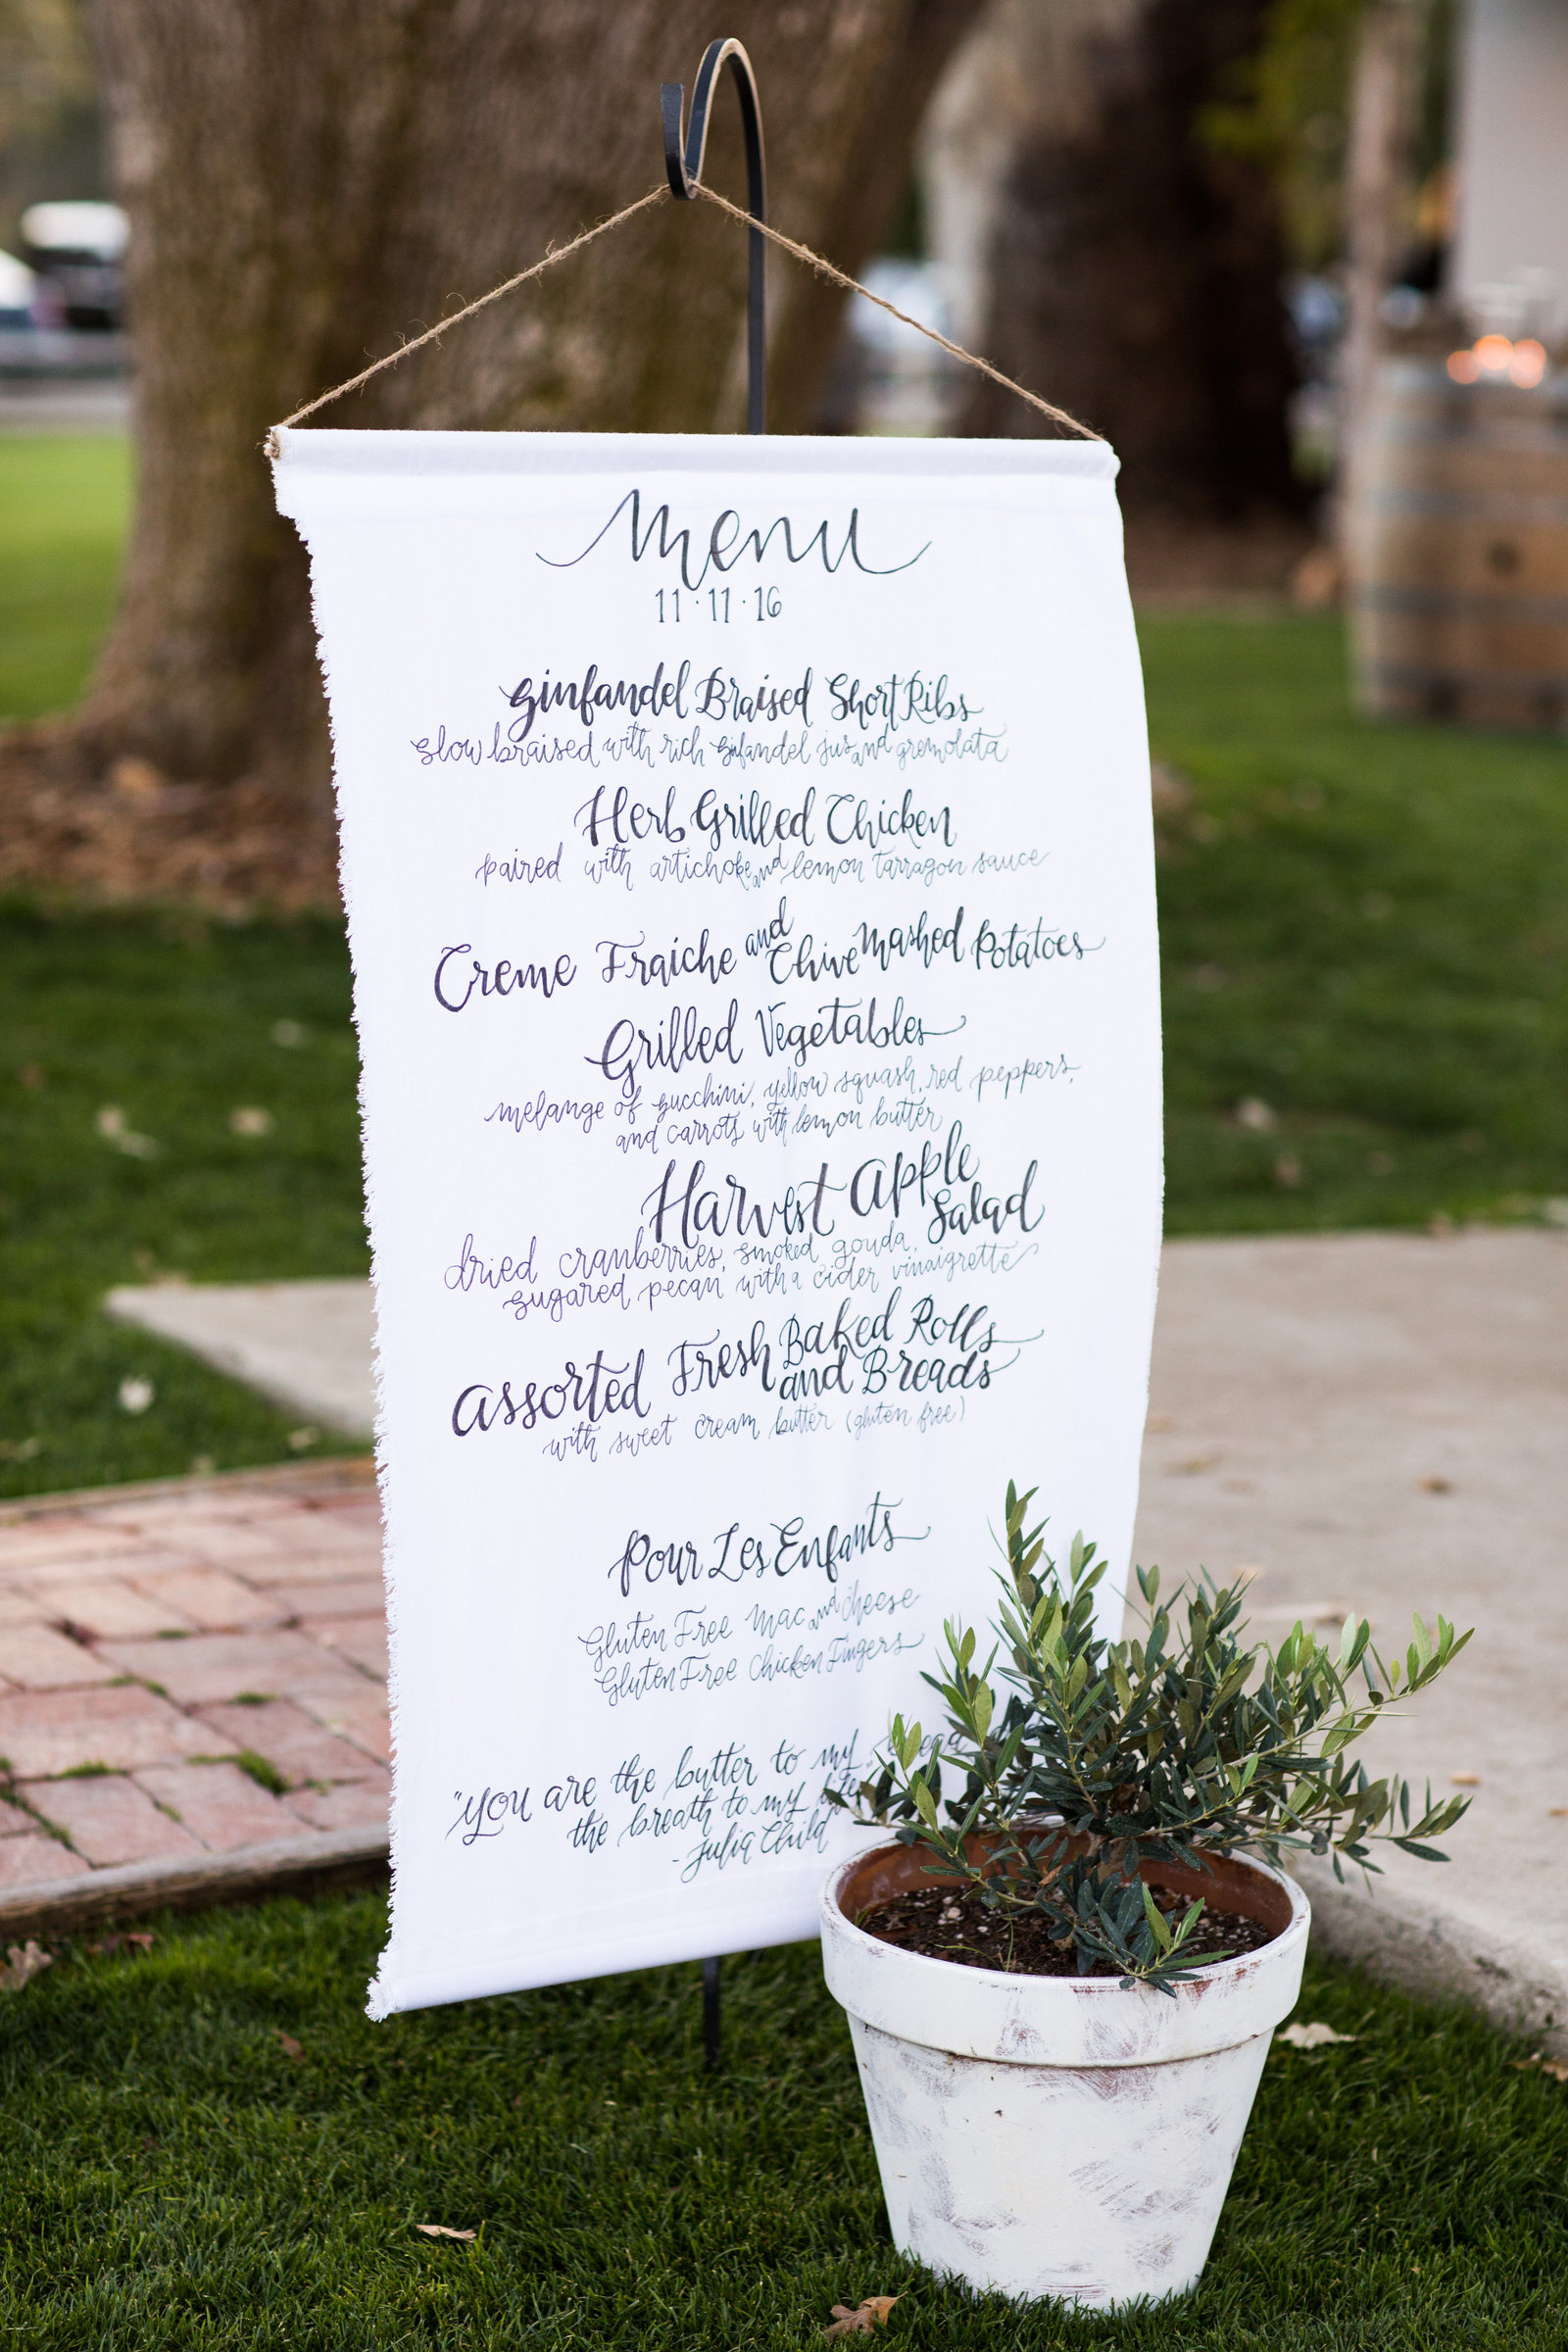 linen hanging banner for menu or other wedding signage during wedding reception